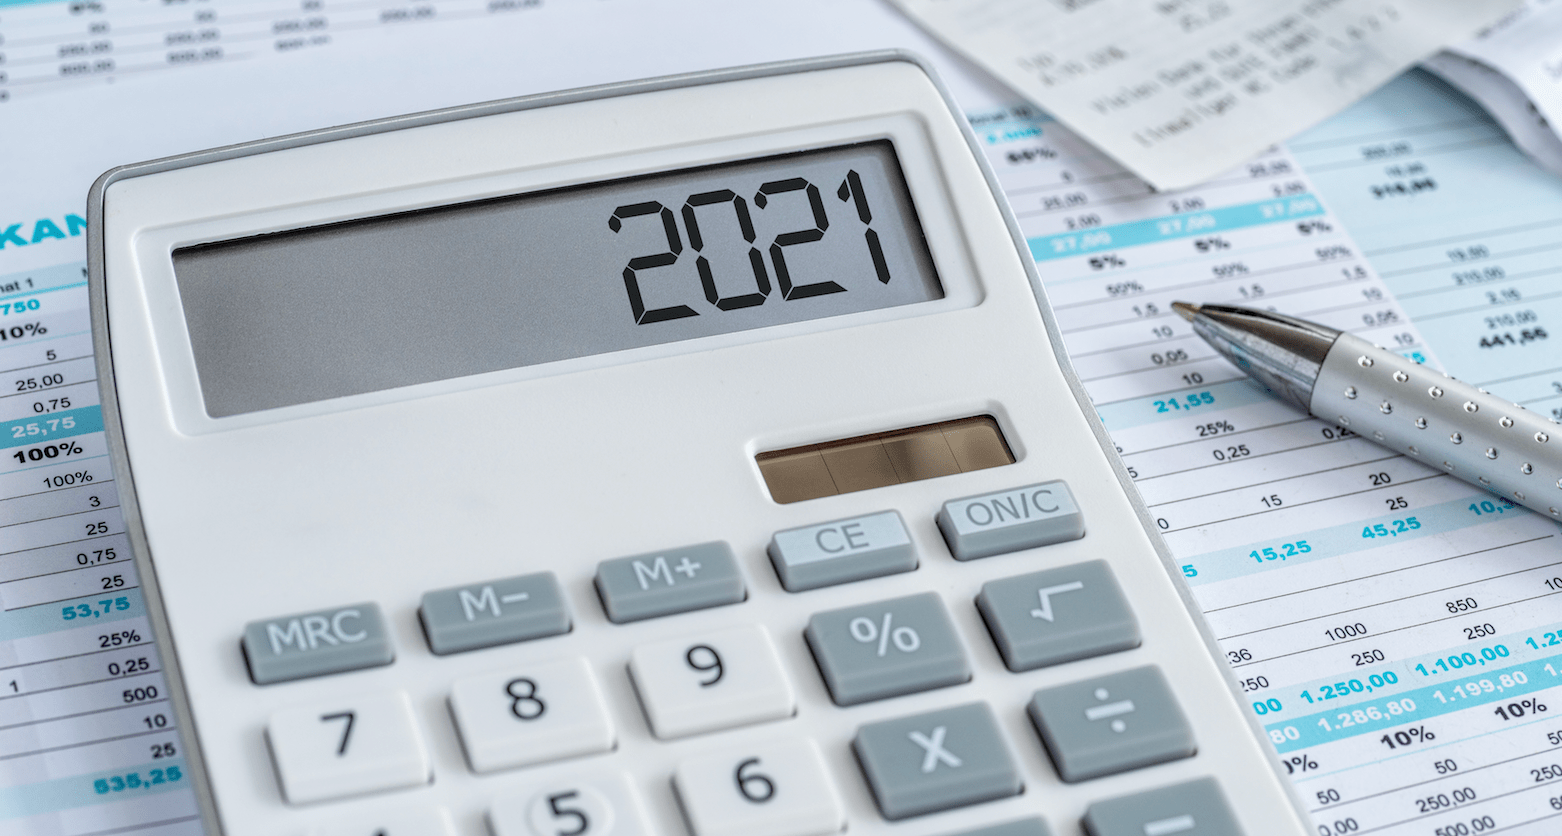 Accrual accounting switch by end of 2022/2023 fiscal period